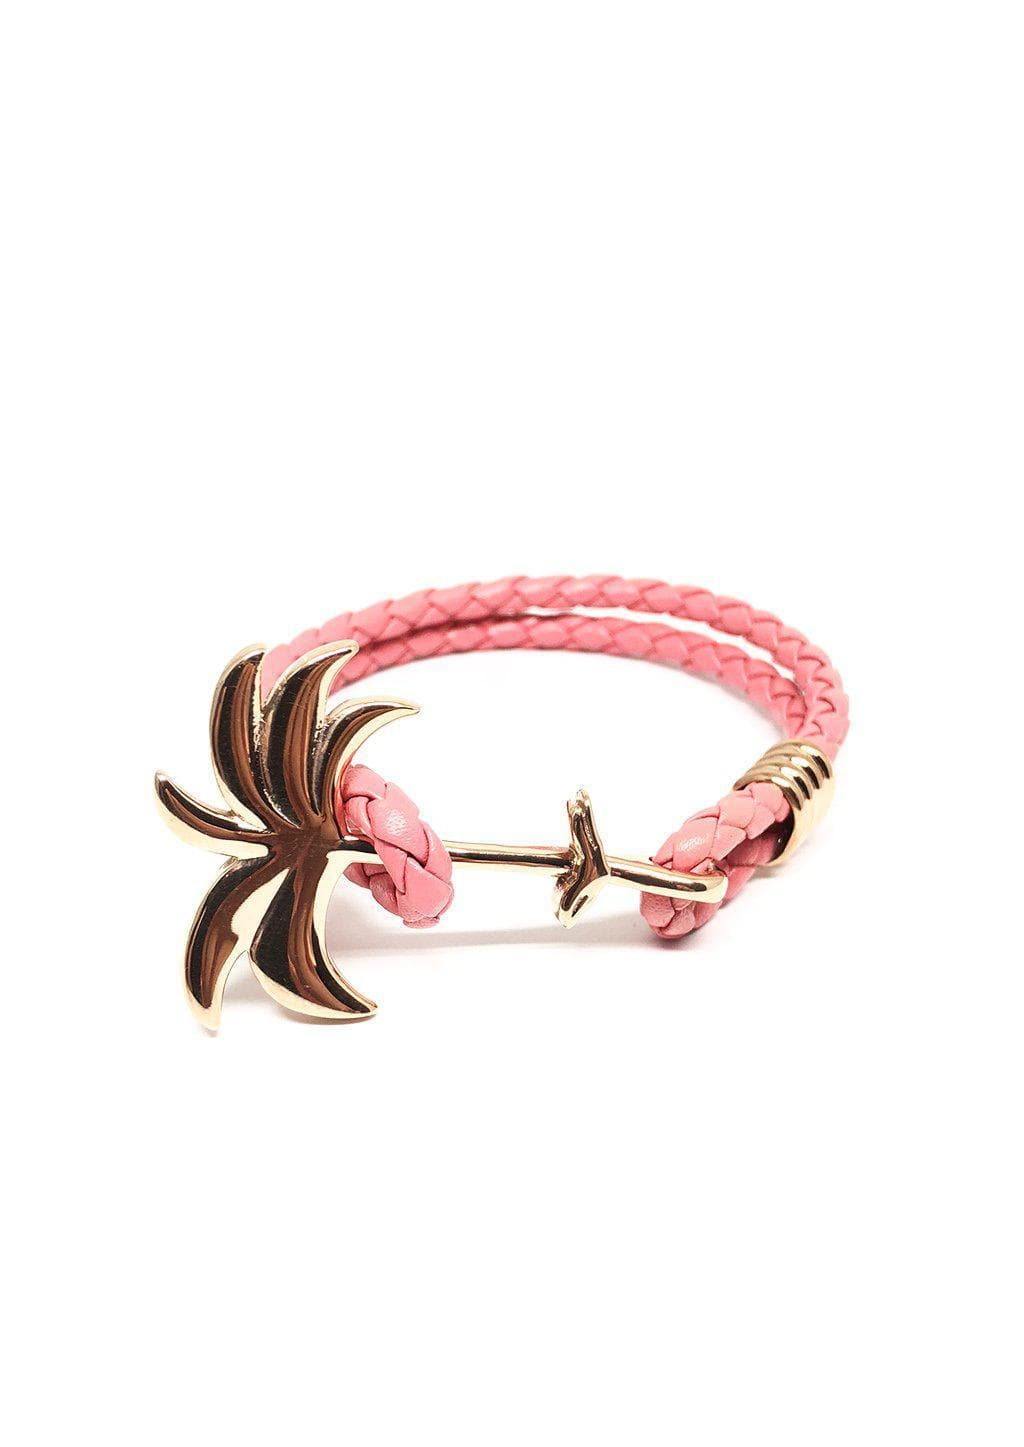 Flamingo Rose - Palm anchor bracelet with pink leather.